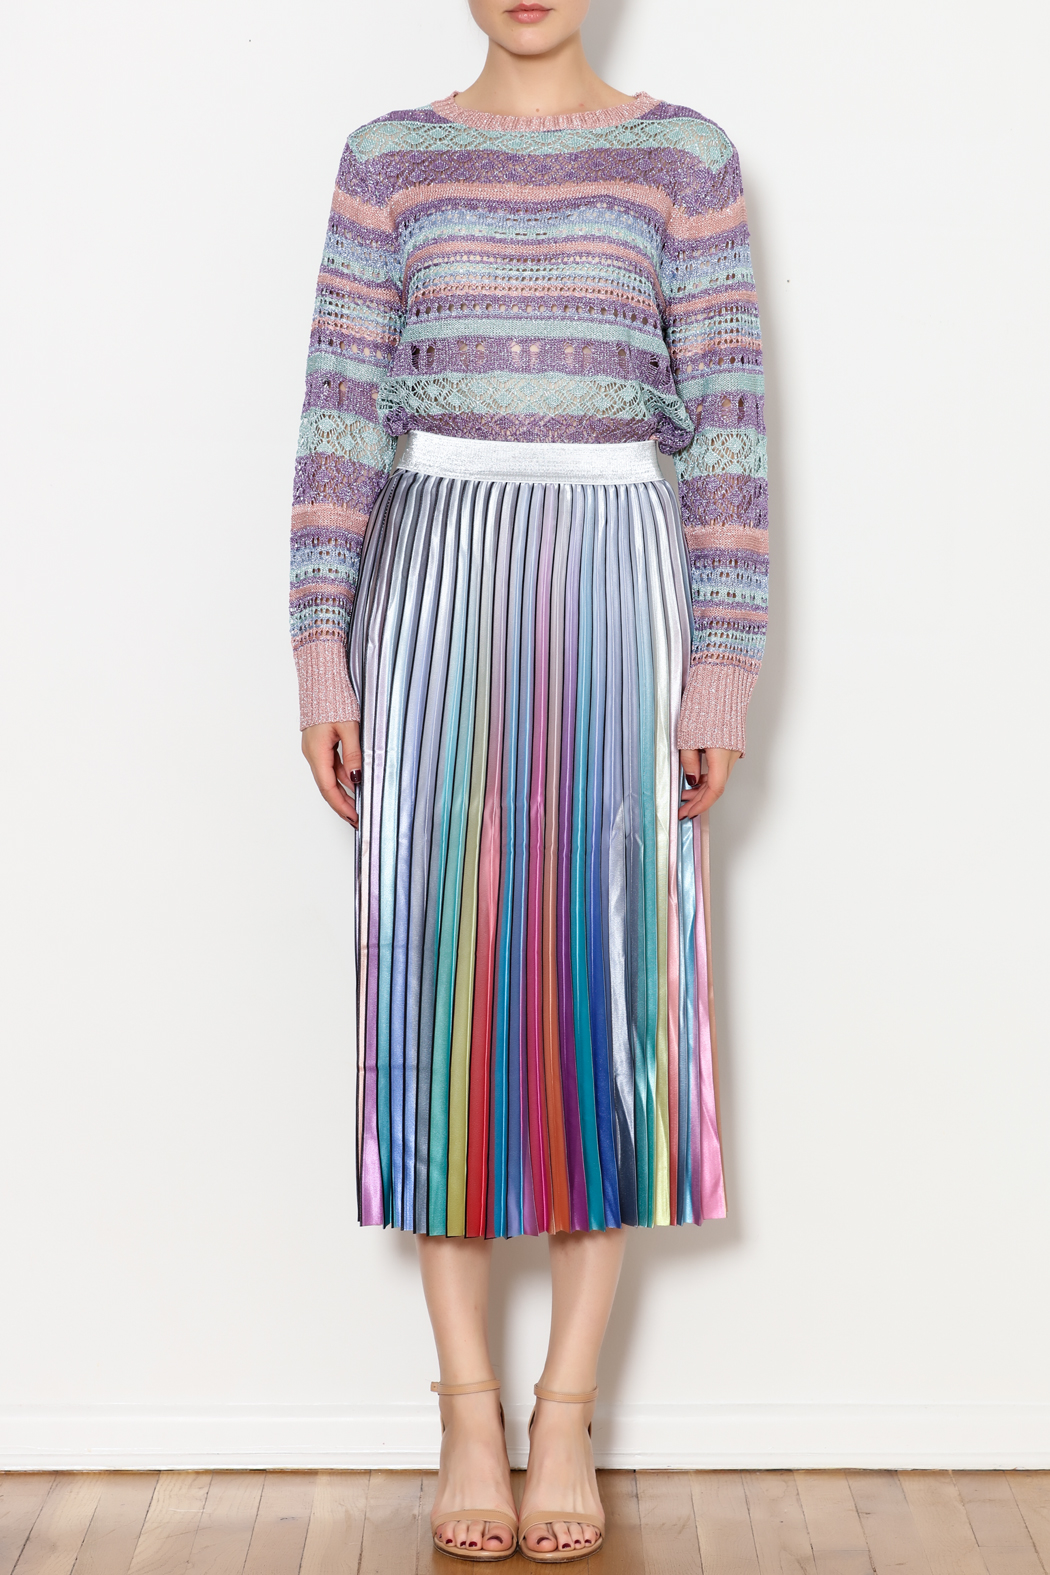 THINK CLOSET Sparkle and Stripes Top - Front Full Image